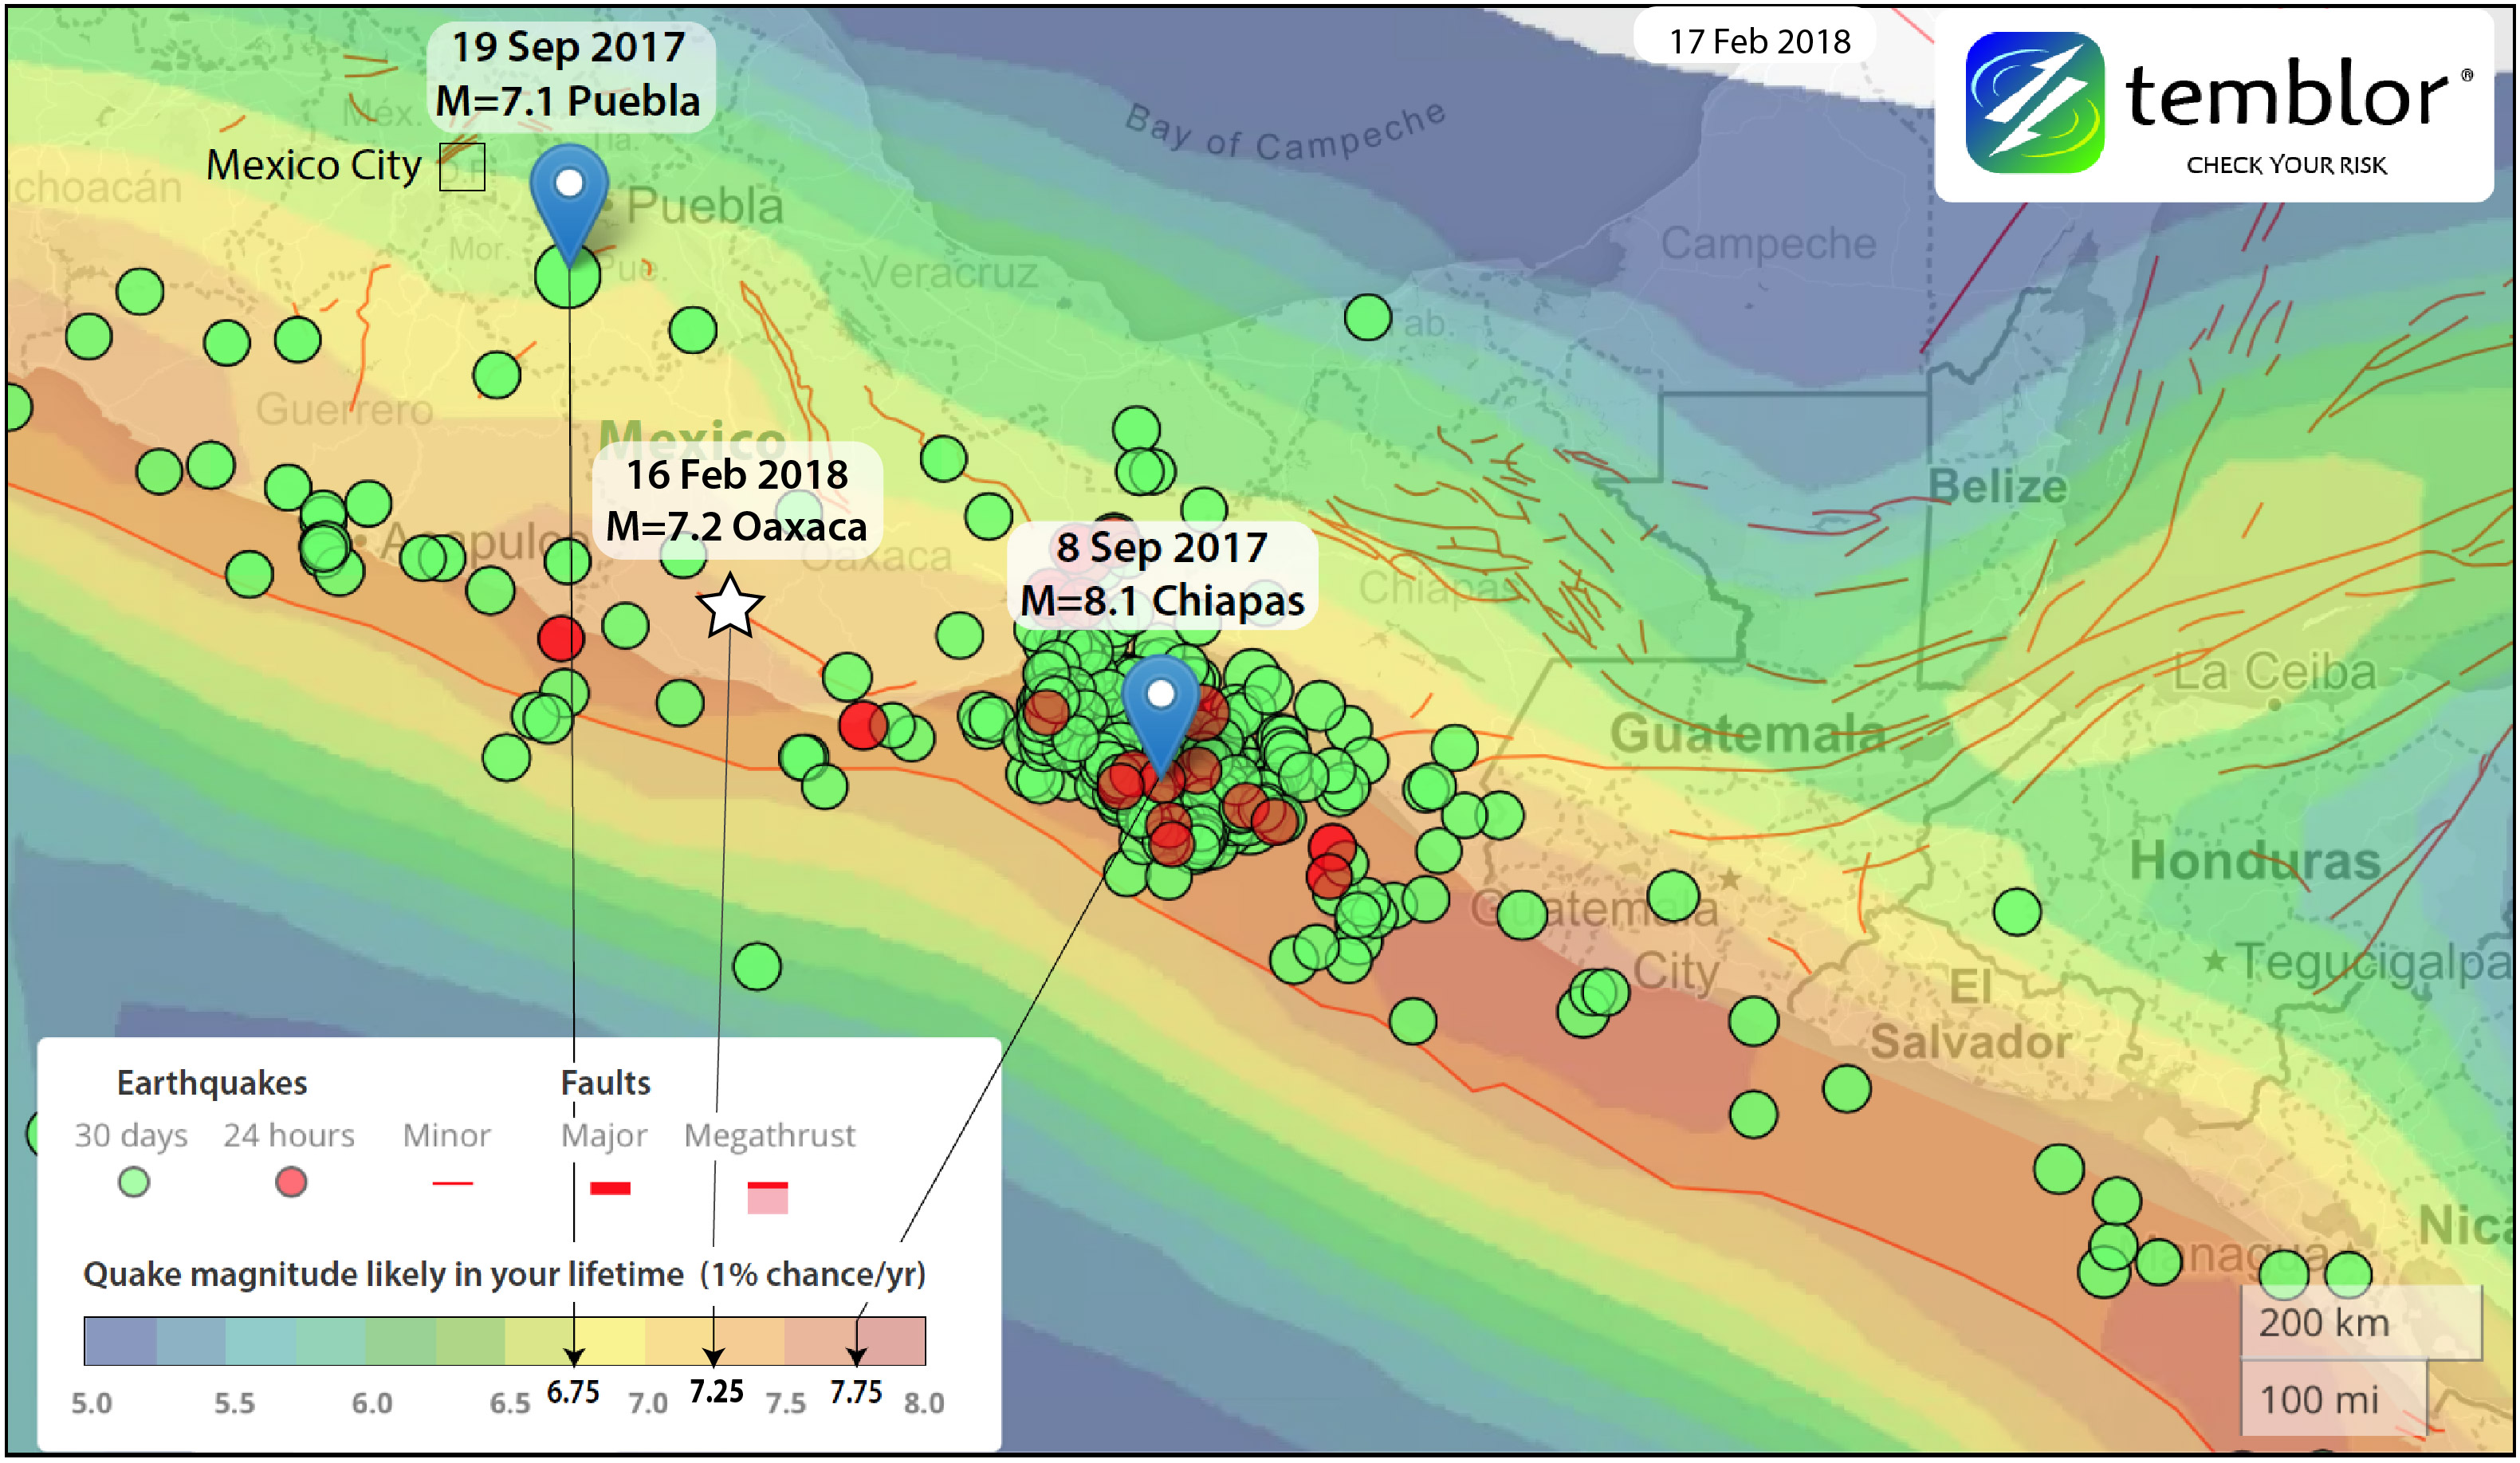 This Temblor map shows the Global Earthquake Activity Rate (GEAR) model for much of Mexico. This model uses global strain rates and the last 40 years of seismicity to forecast the likely earthquake magnitude in your lifetime anywhere on earth. The map also highlights the locations of the three large, recent Mexico earthquakes and their relative ratings on the GEAR scale.